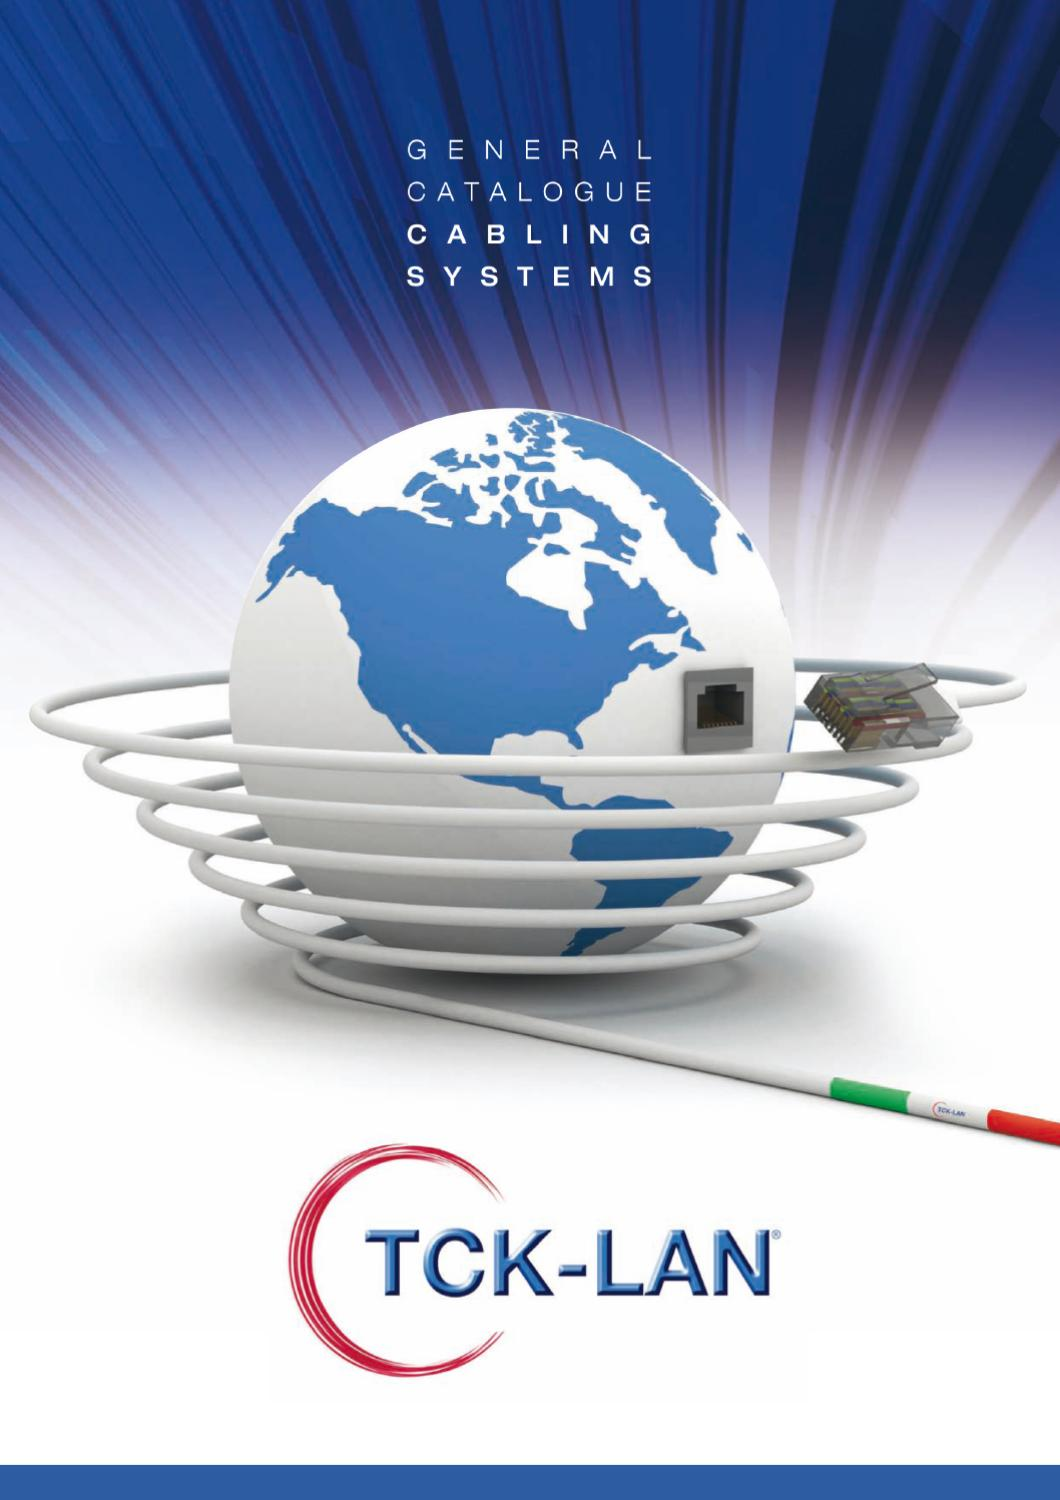 Tck Lan General Catalogue 2011 By Digital Media Issuu 73 Cat6 Patch Panel 110 Type 24 Port 568a B Compatible